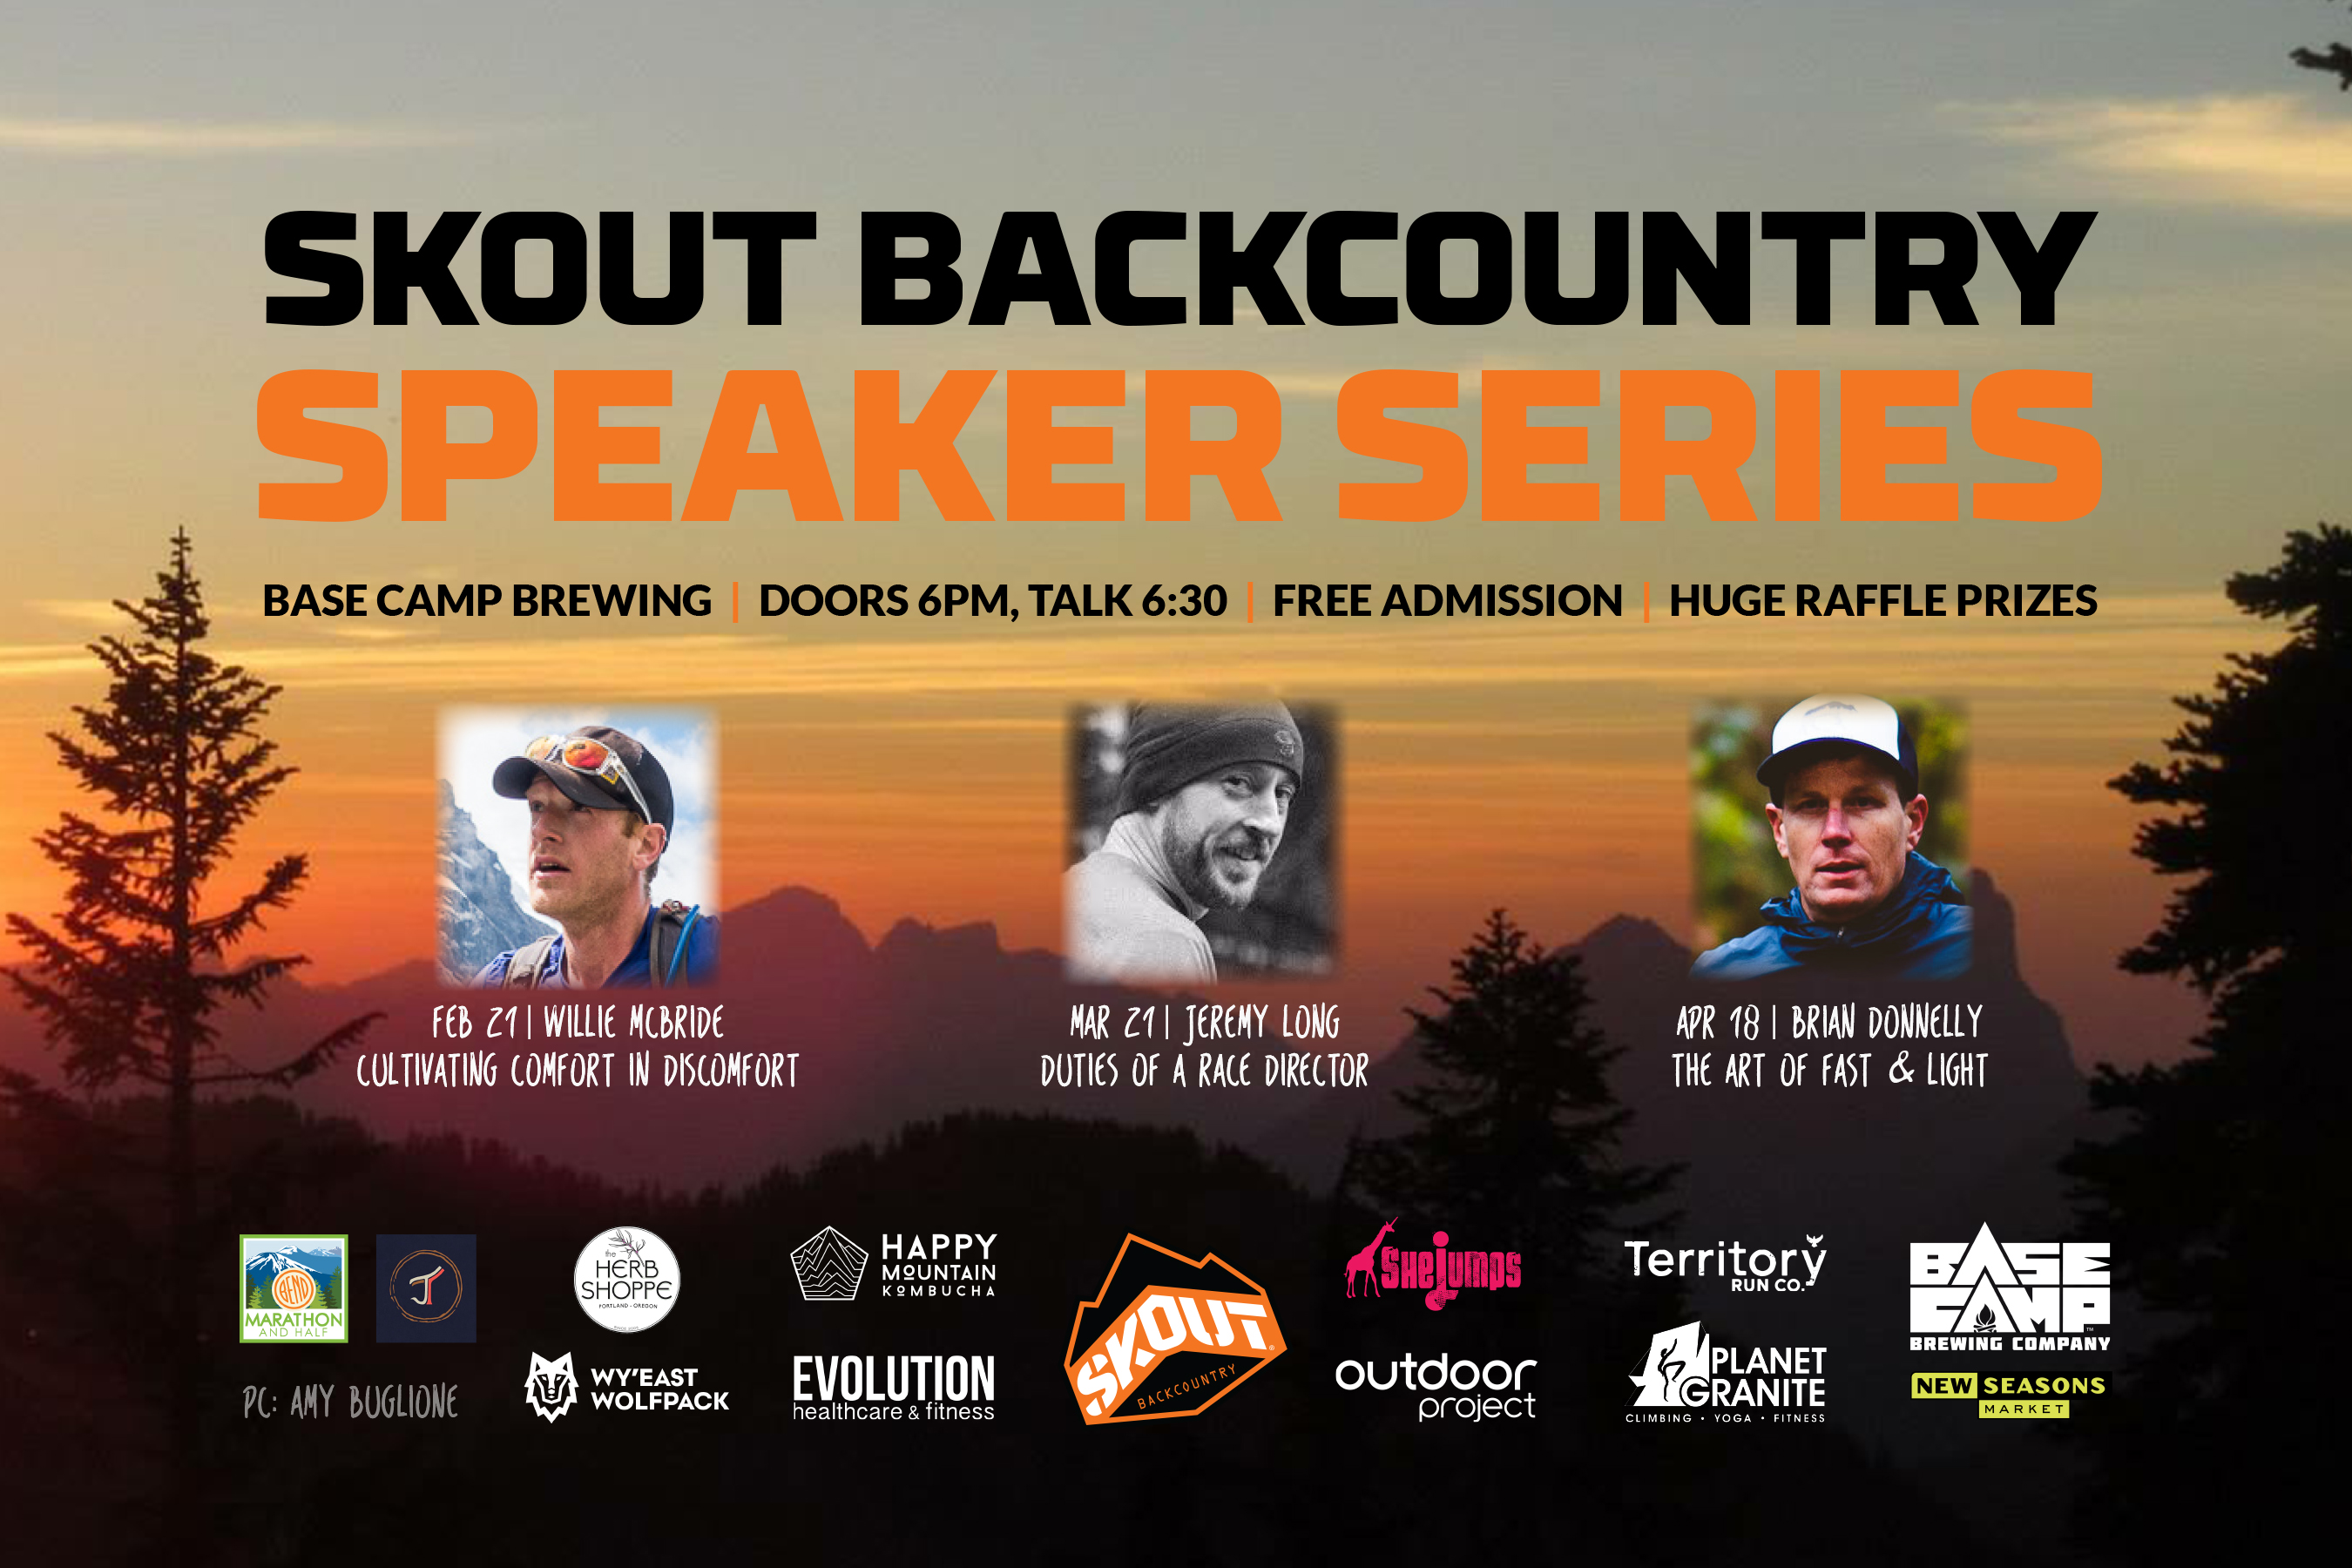 Skout Backcountry #skoutoutside Speaker Series